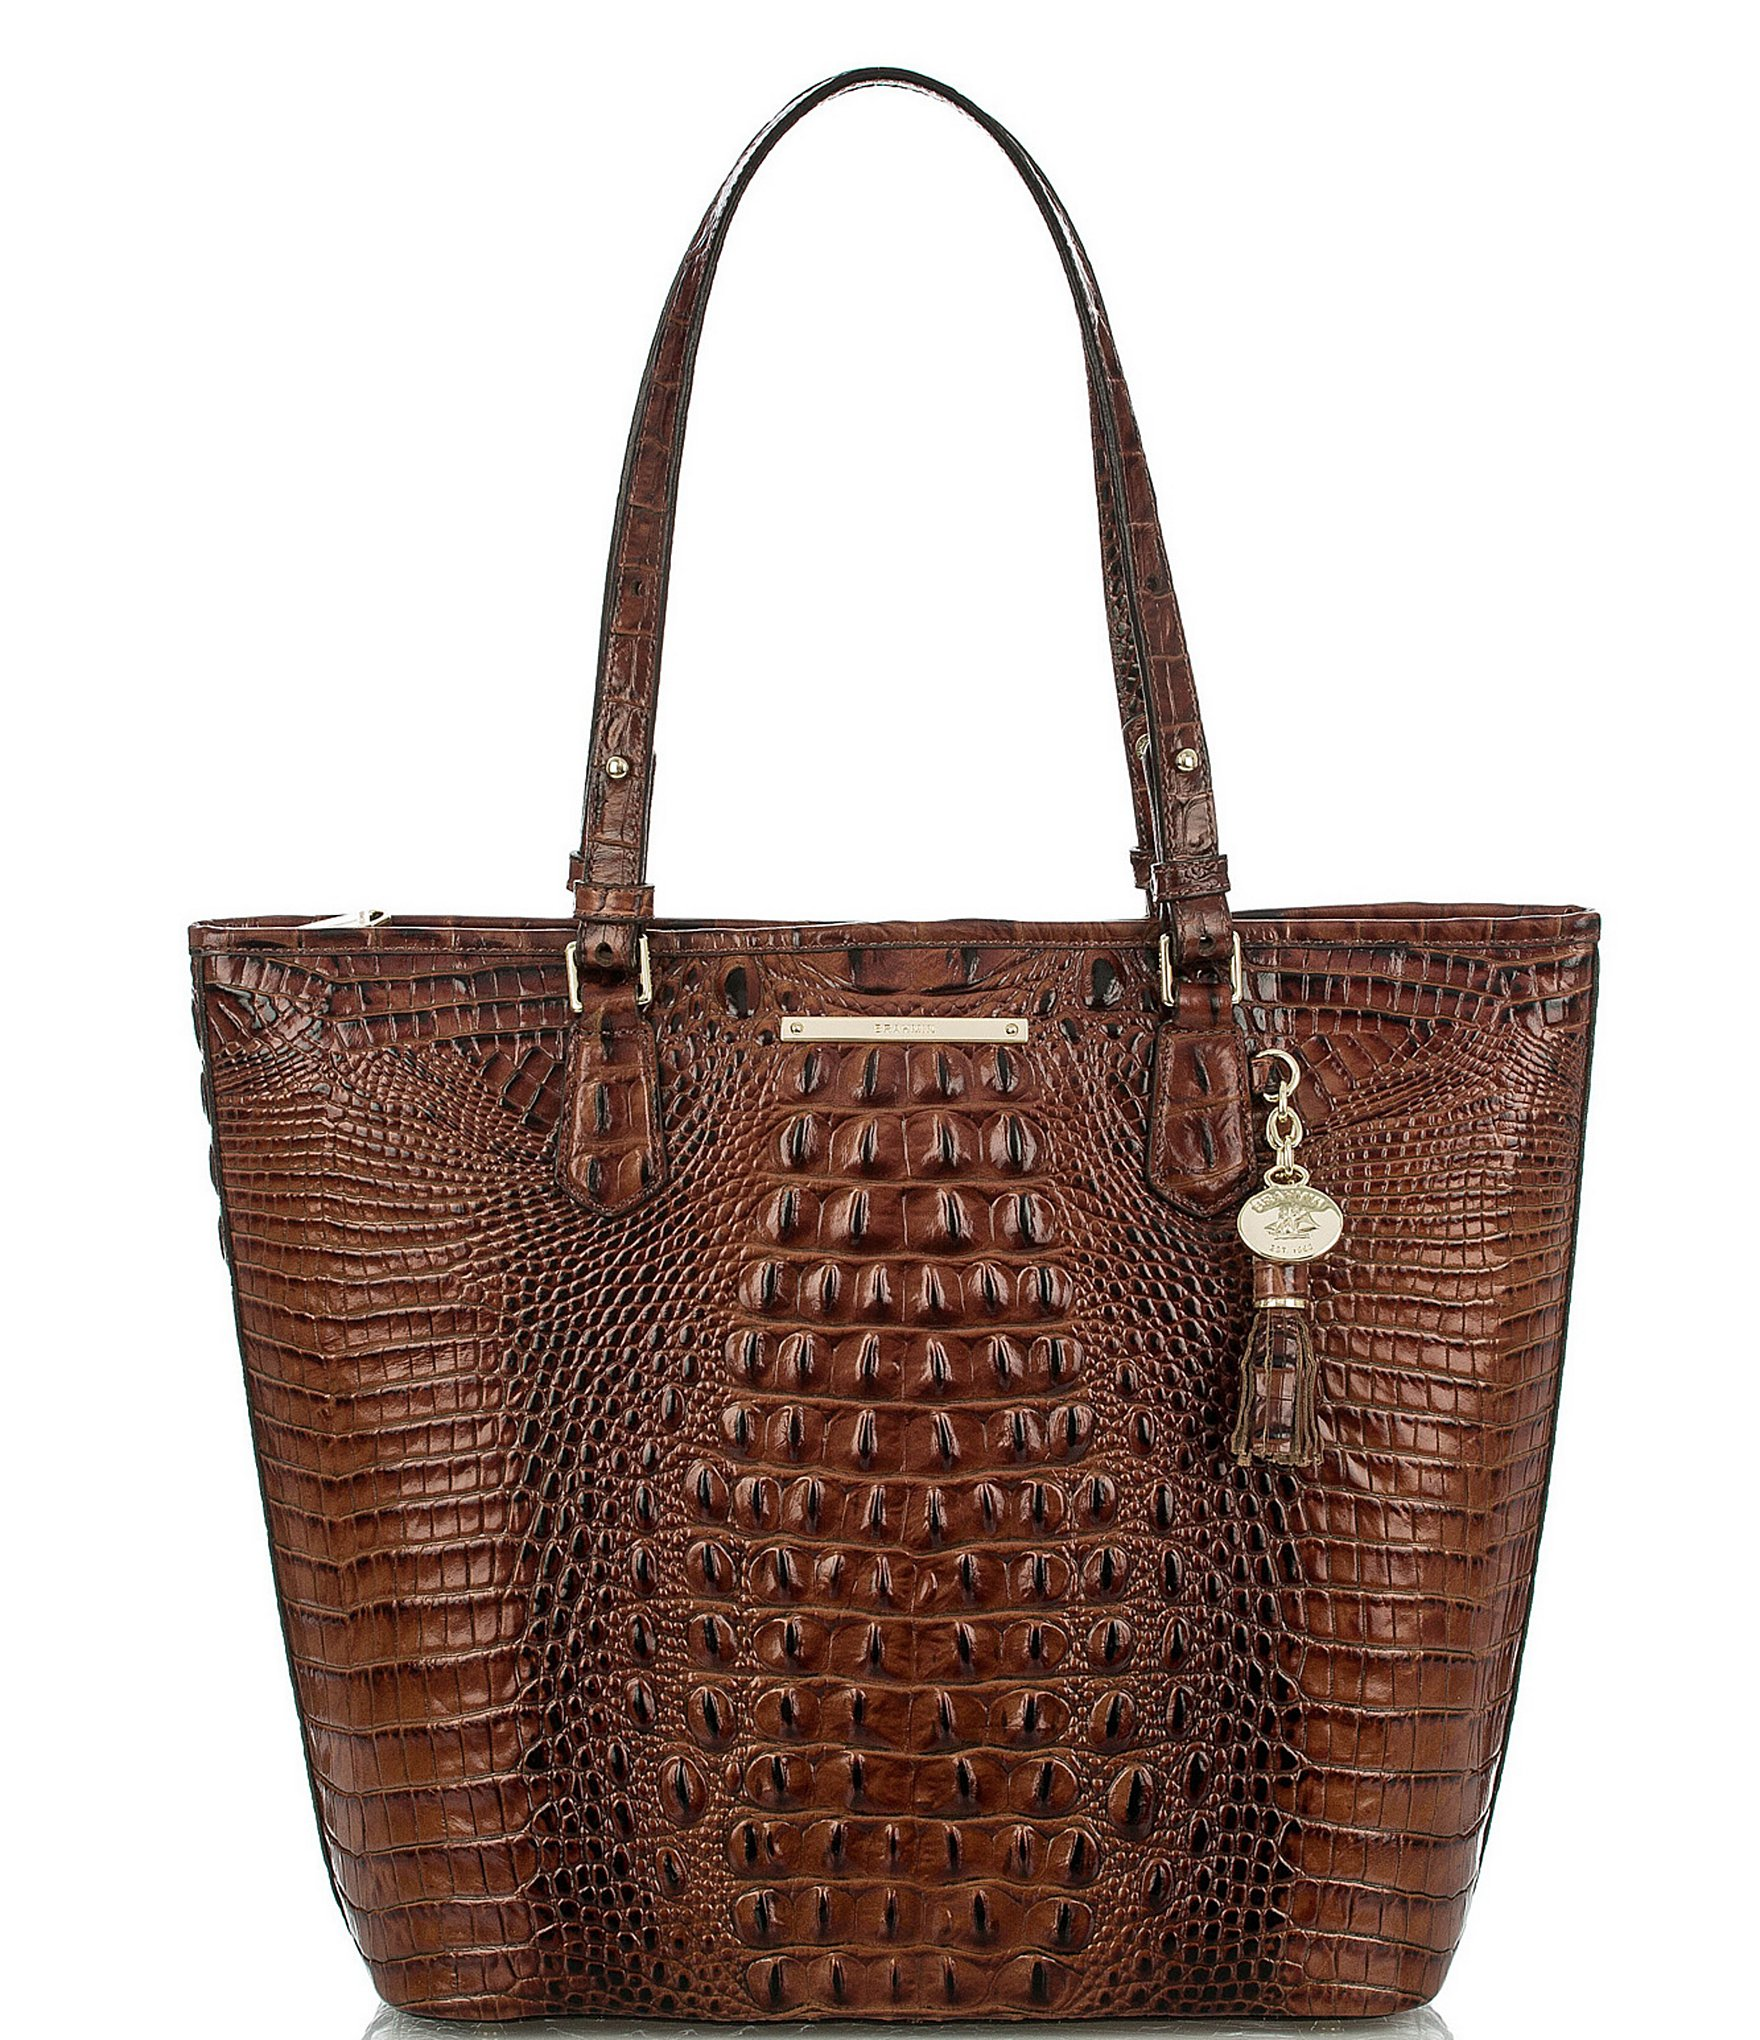 c760f7c96c66 Brahmin Handbags Outlet Sale | Stanford Center for Opportunity ...